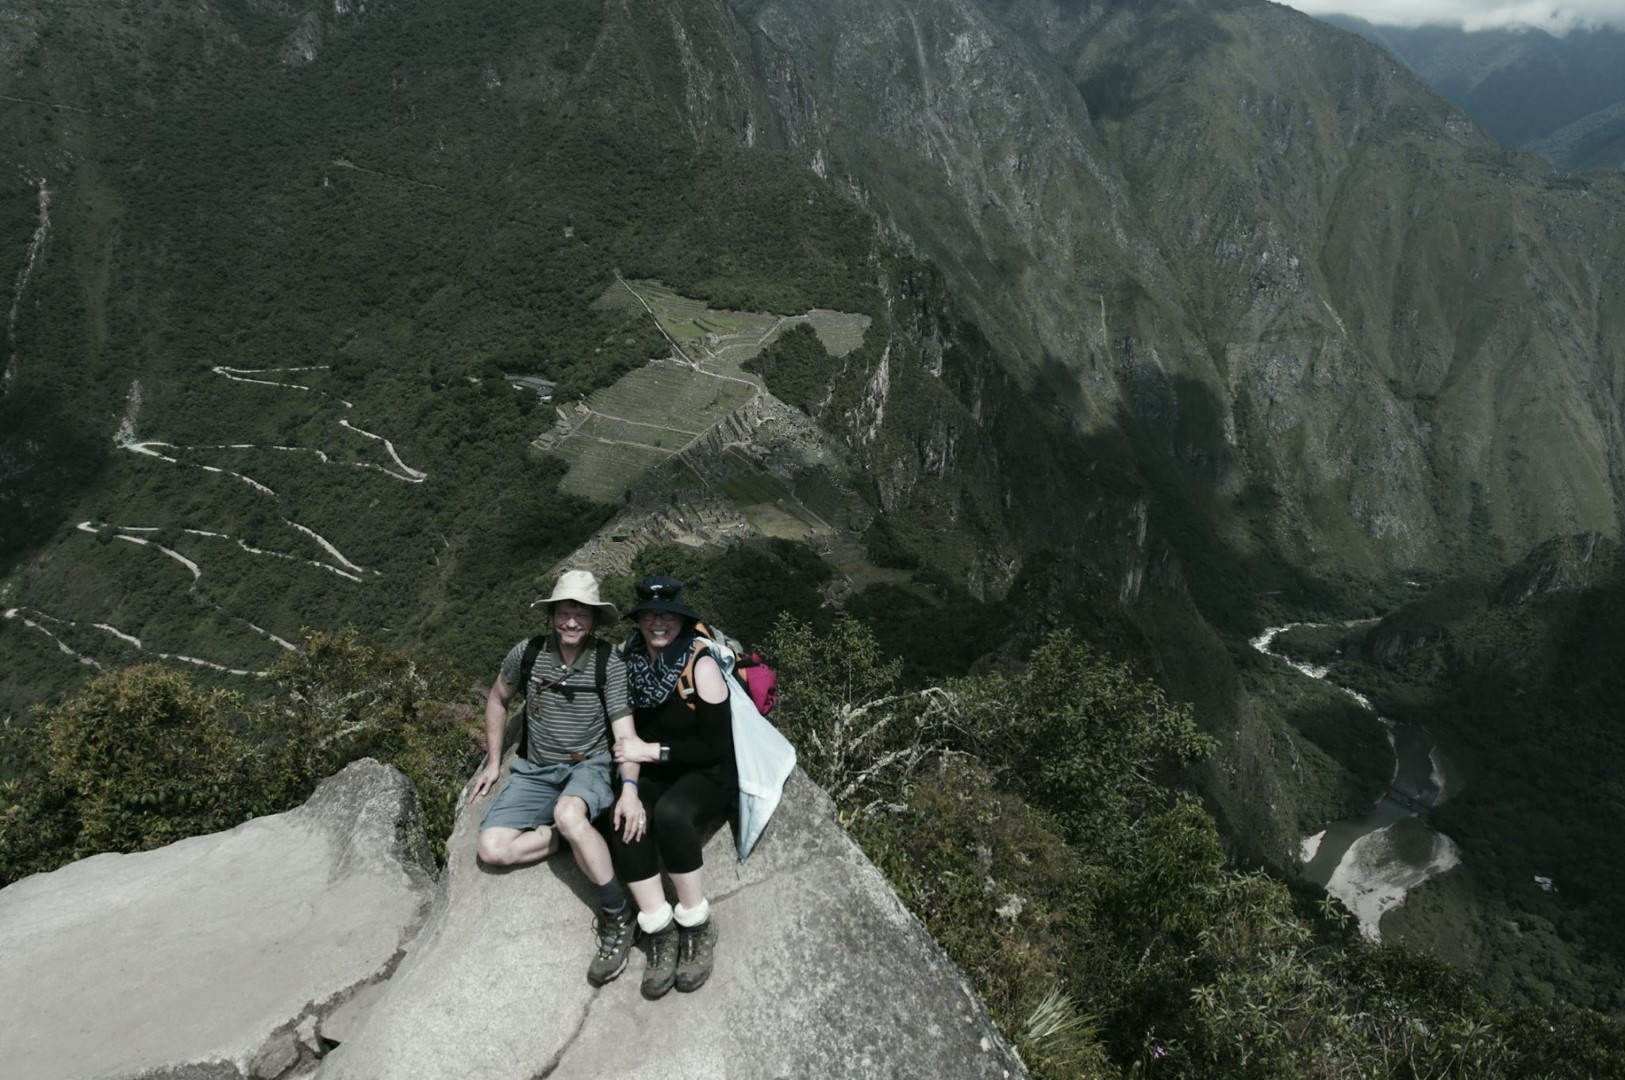 07 - Atop Huayna Picchu with Machu Picchu in the background.jpg